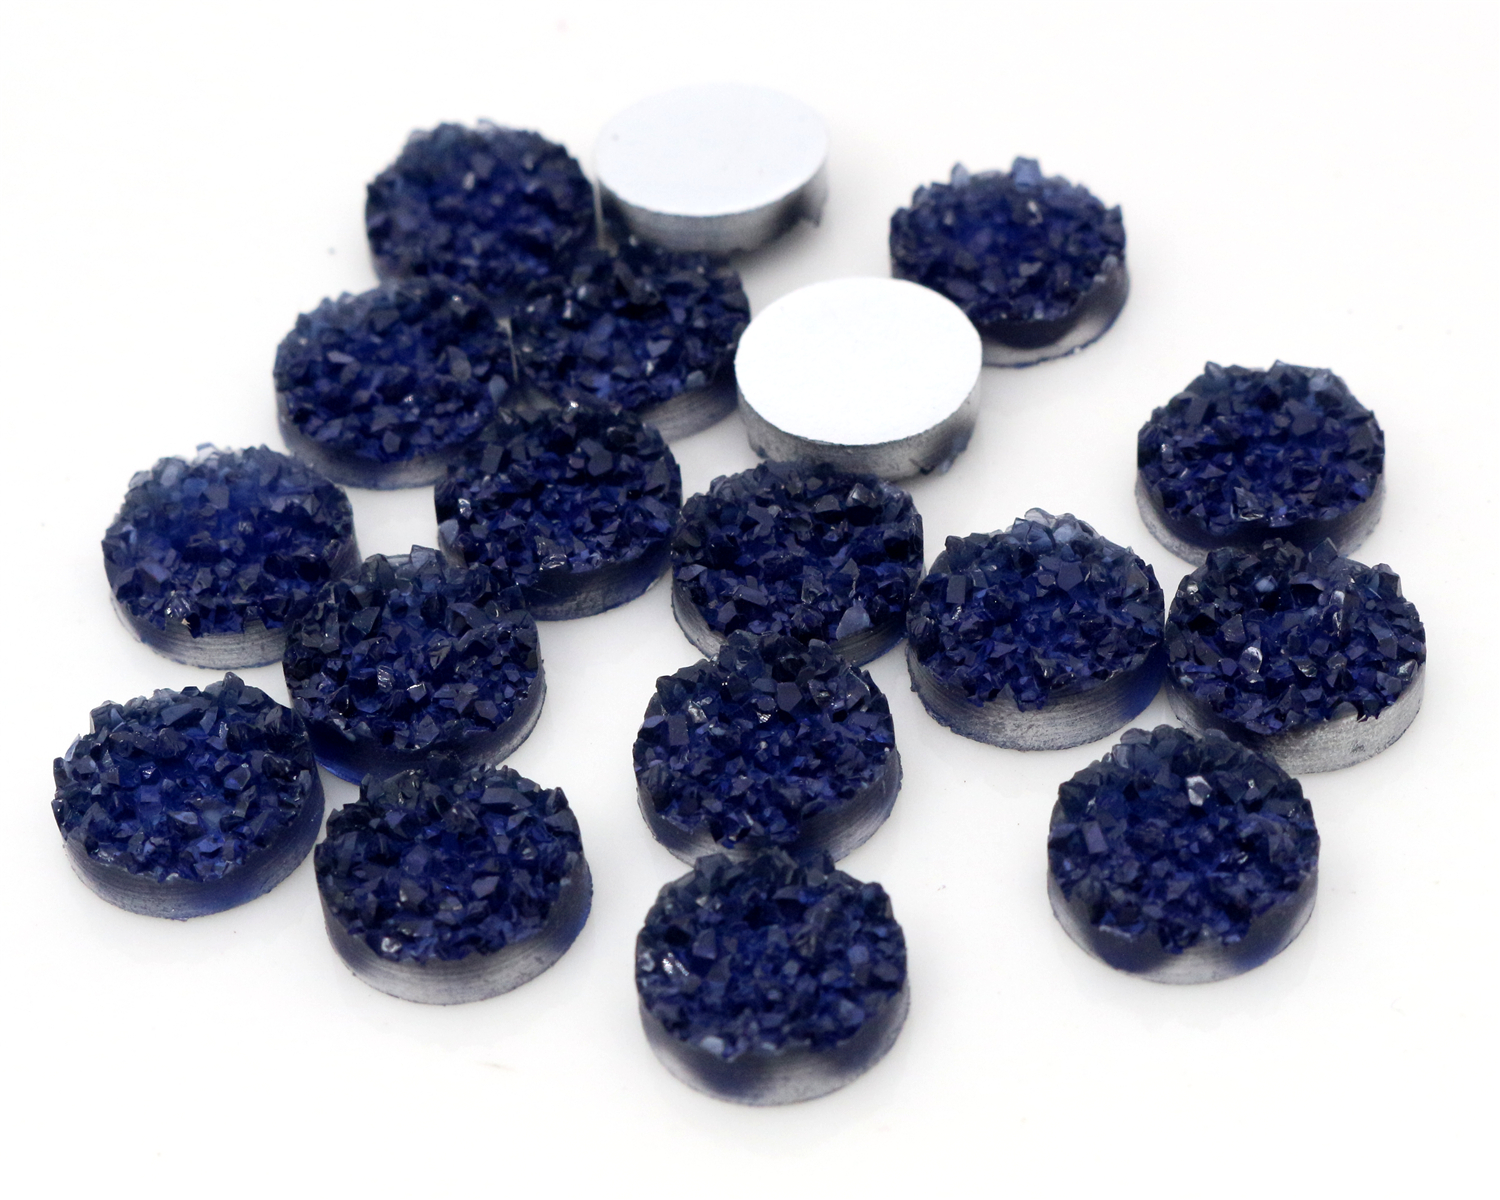 New Fashion 40pcs 12mm Blue ink Colors Druzy Natural ore Style Flat back Resin Cabochons For Bracelet Earrings accessories-V4-28New Fashion 40pcs 12mm Blue ink Colors Druzy Natural ore Style Flat back Resin Cabochons For Bracelet Earrings accessories-V4-28